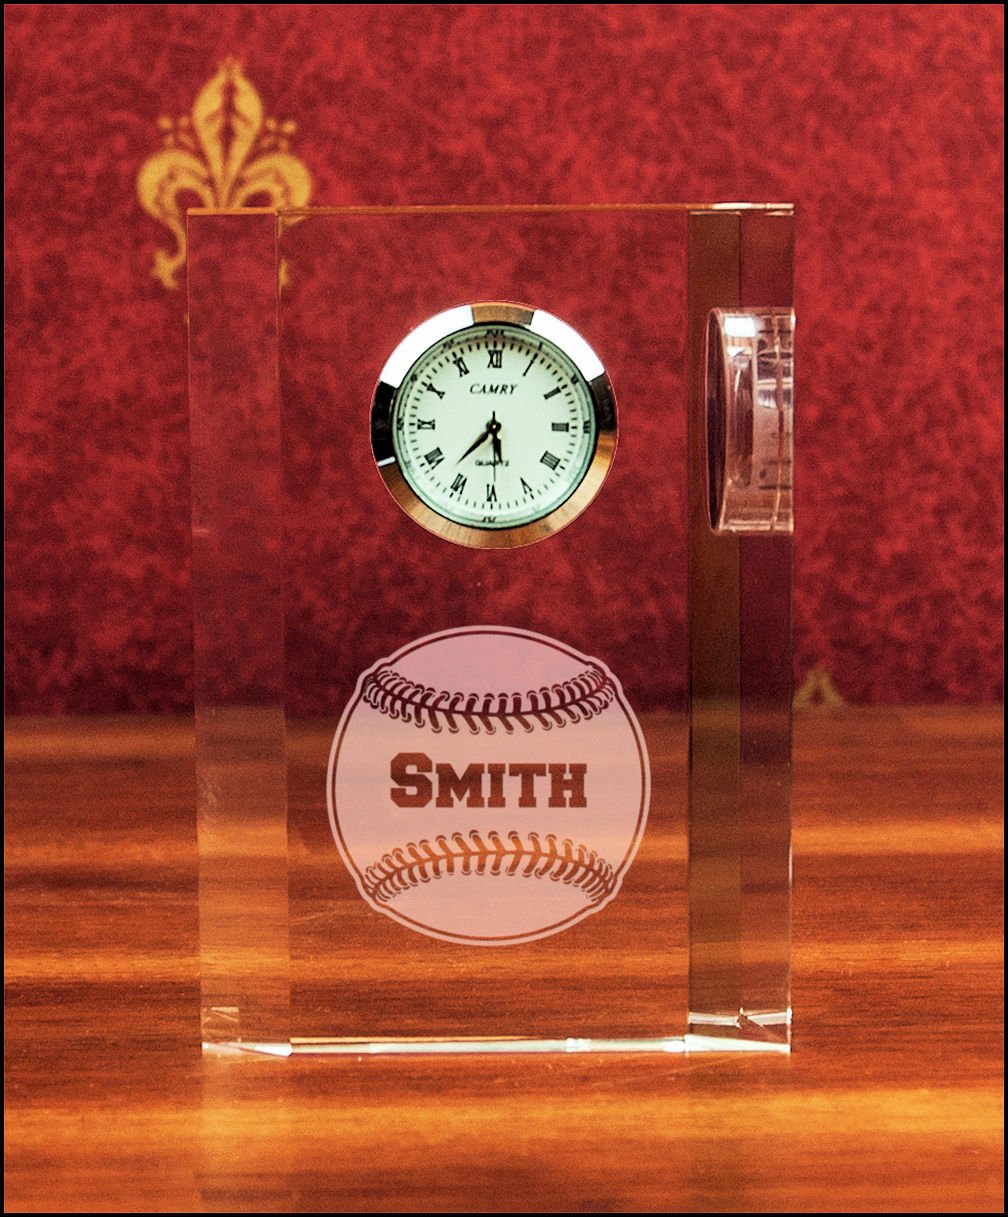 Personalized Optic Crystal Baseball Desk Clock